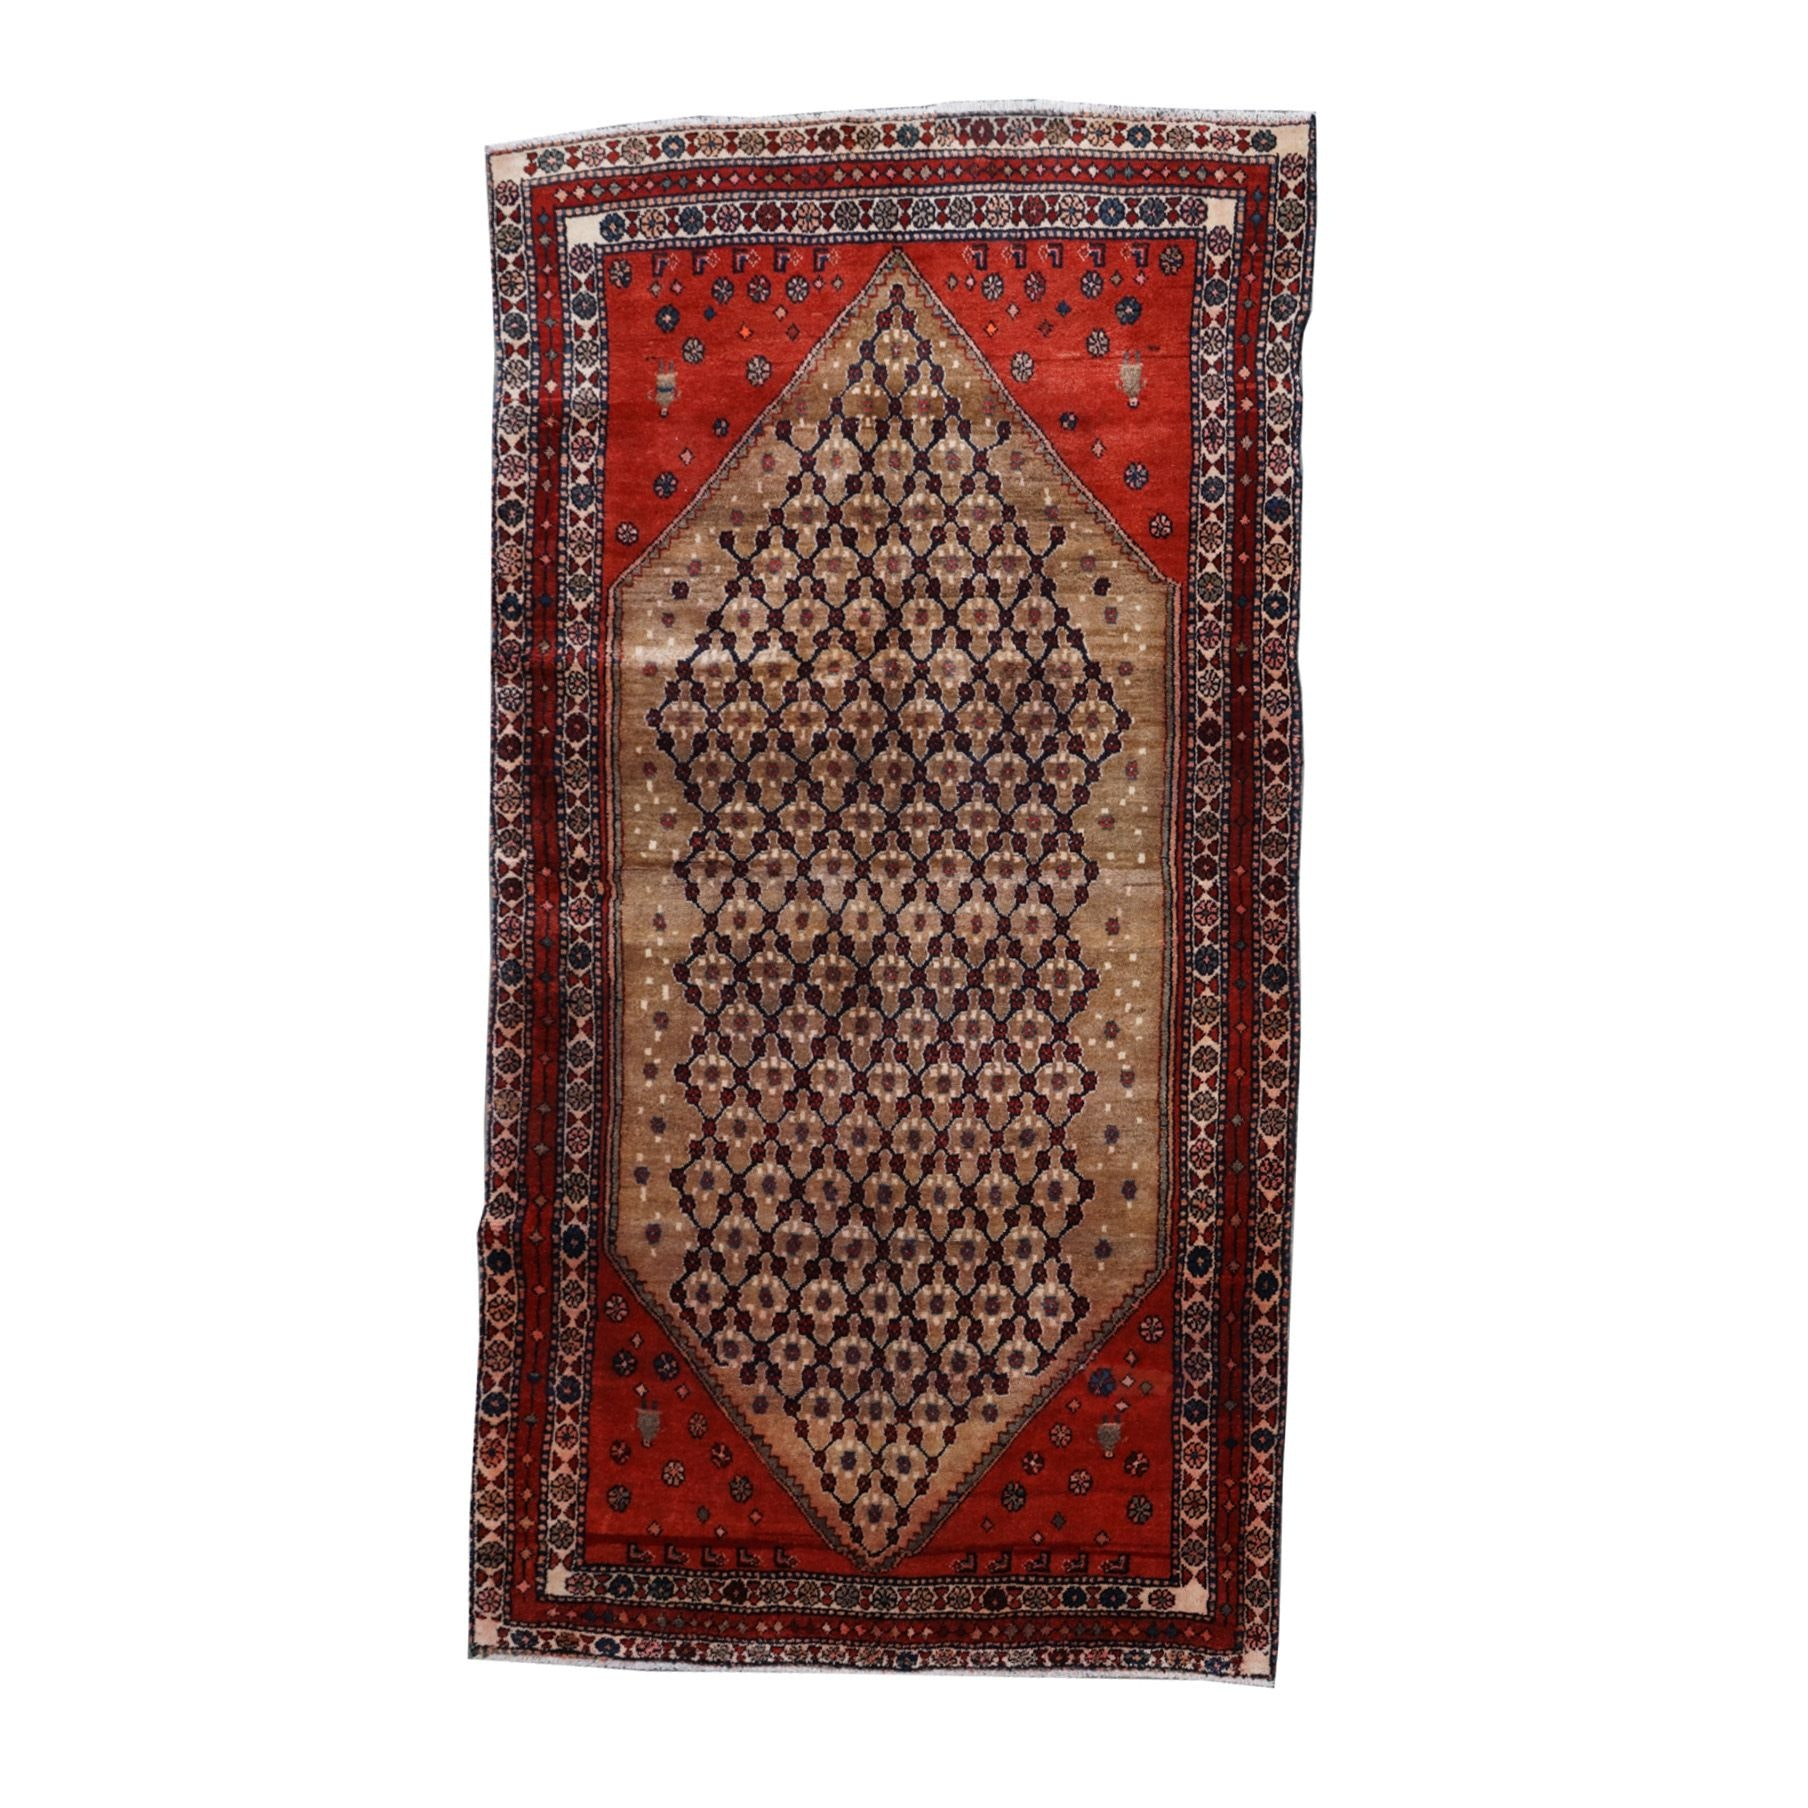 Hand-Knotted Persian Tribal Wool Rug